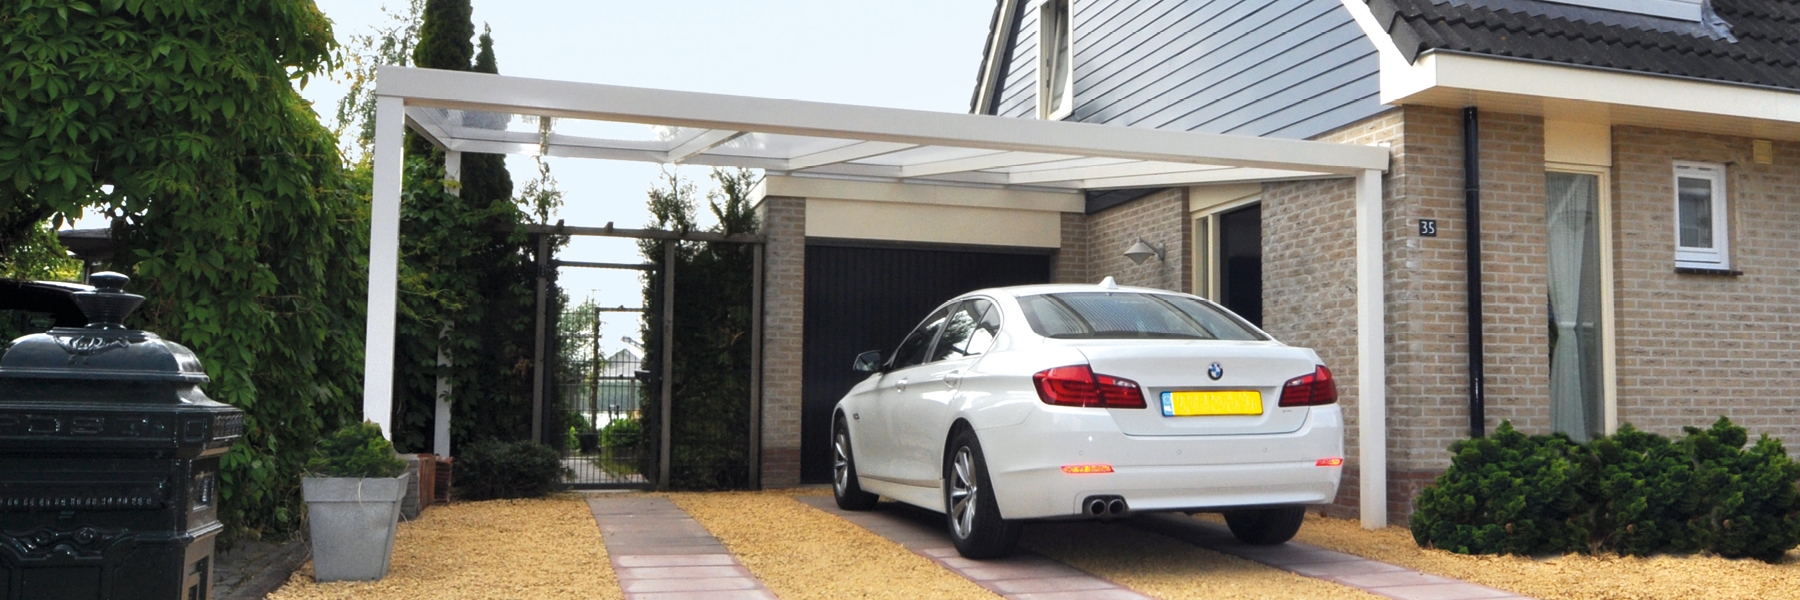 tdm-sliders-carports-vlak2